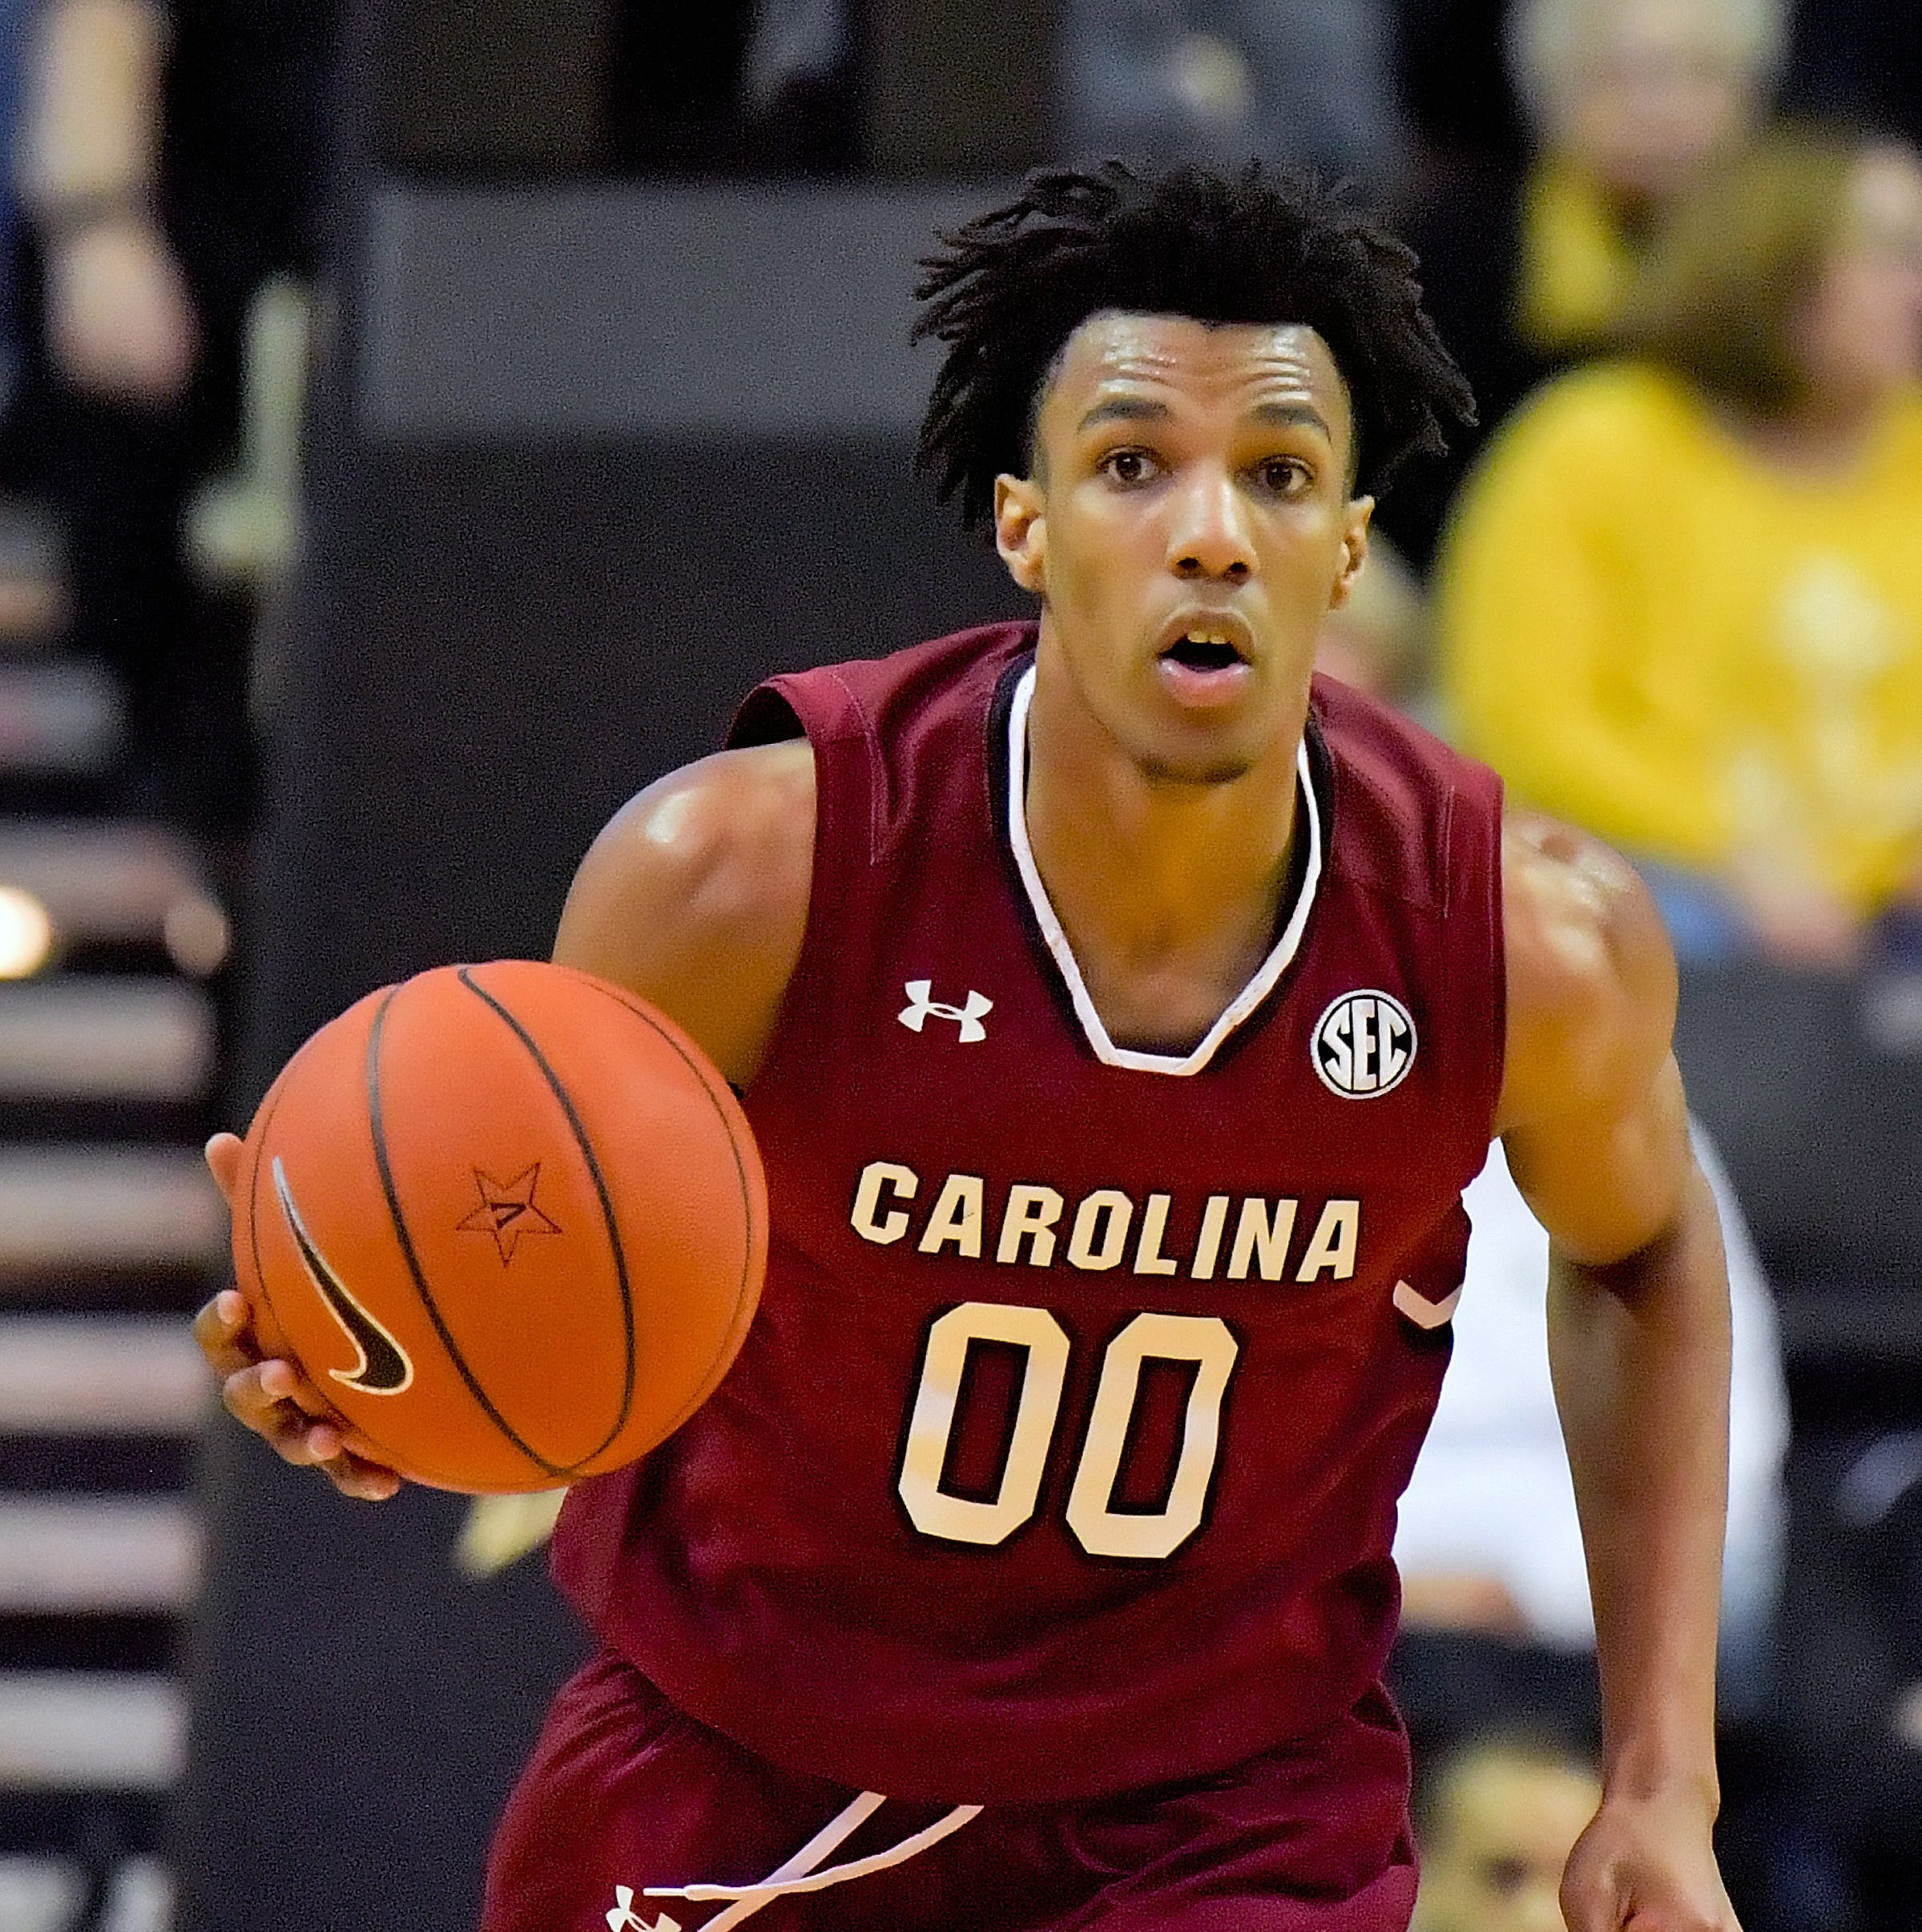 South Carolina basketball player A.J. Lawson announces plans for NBA draft